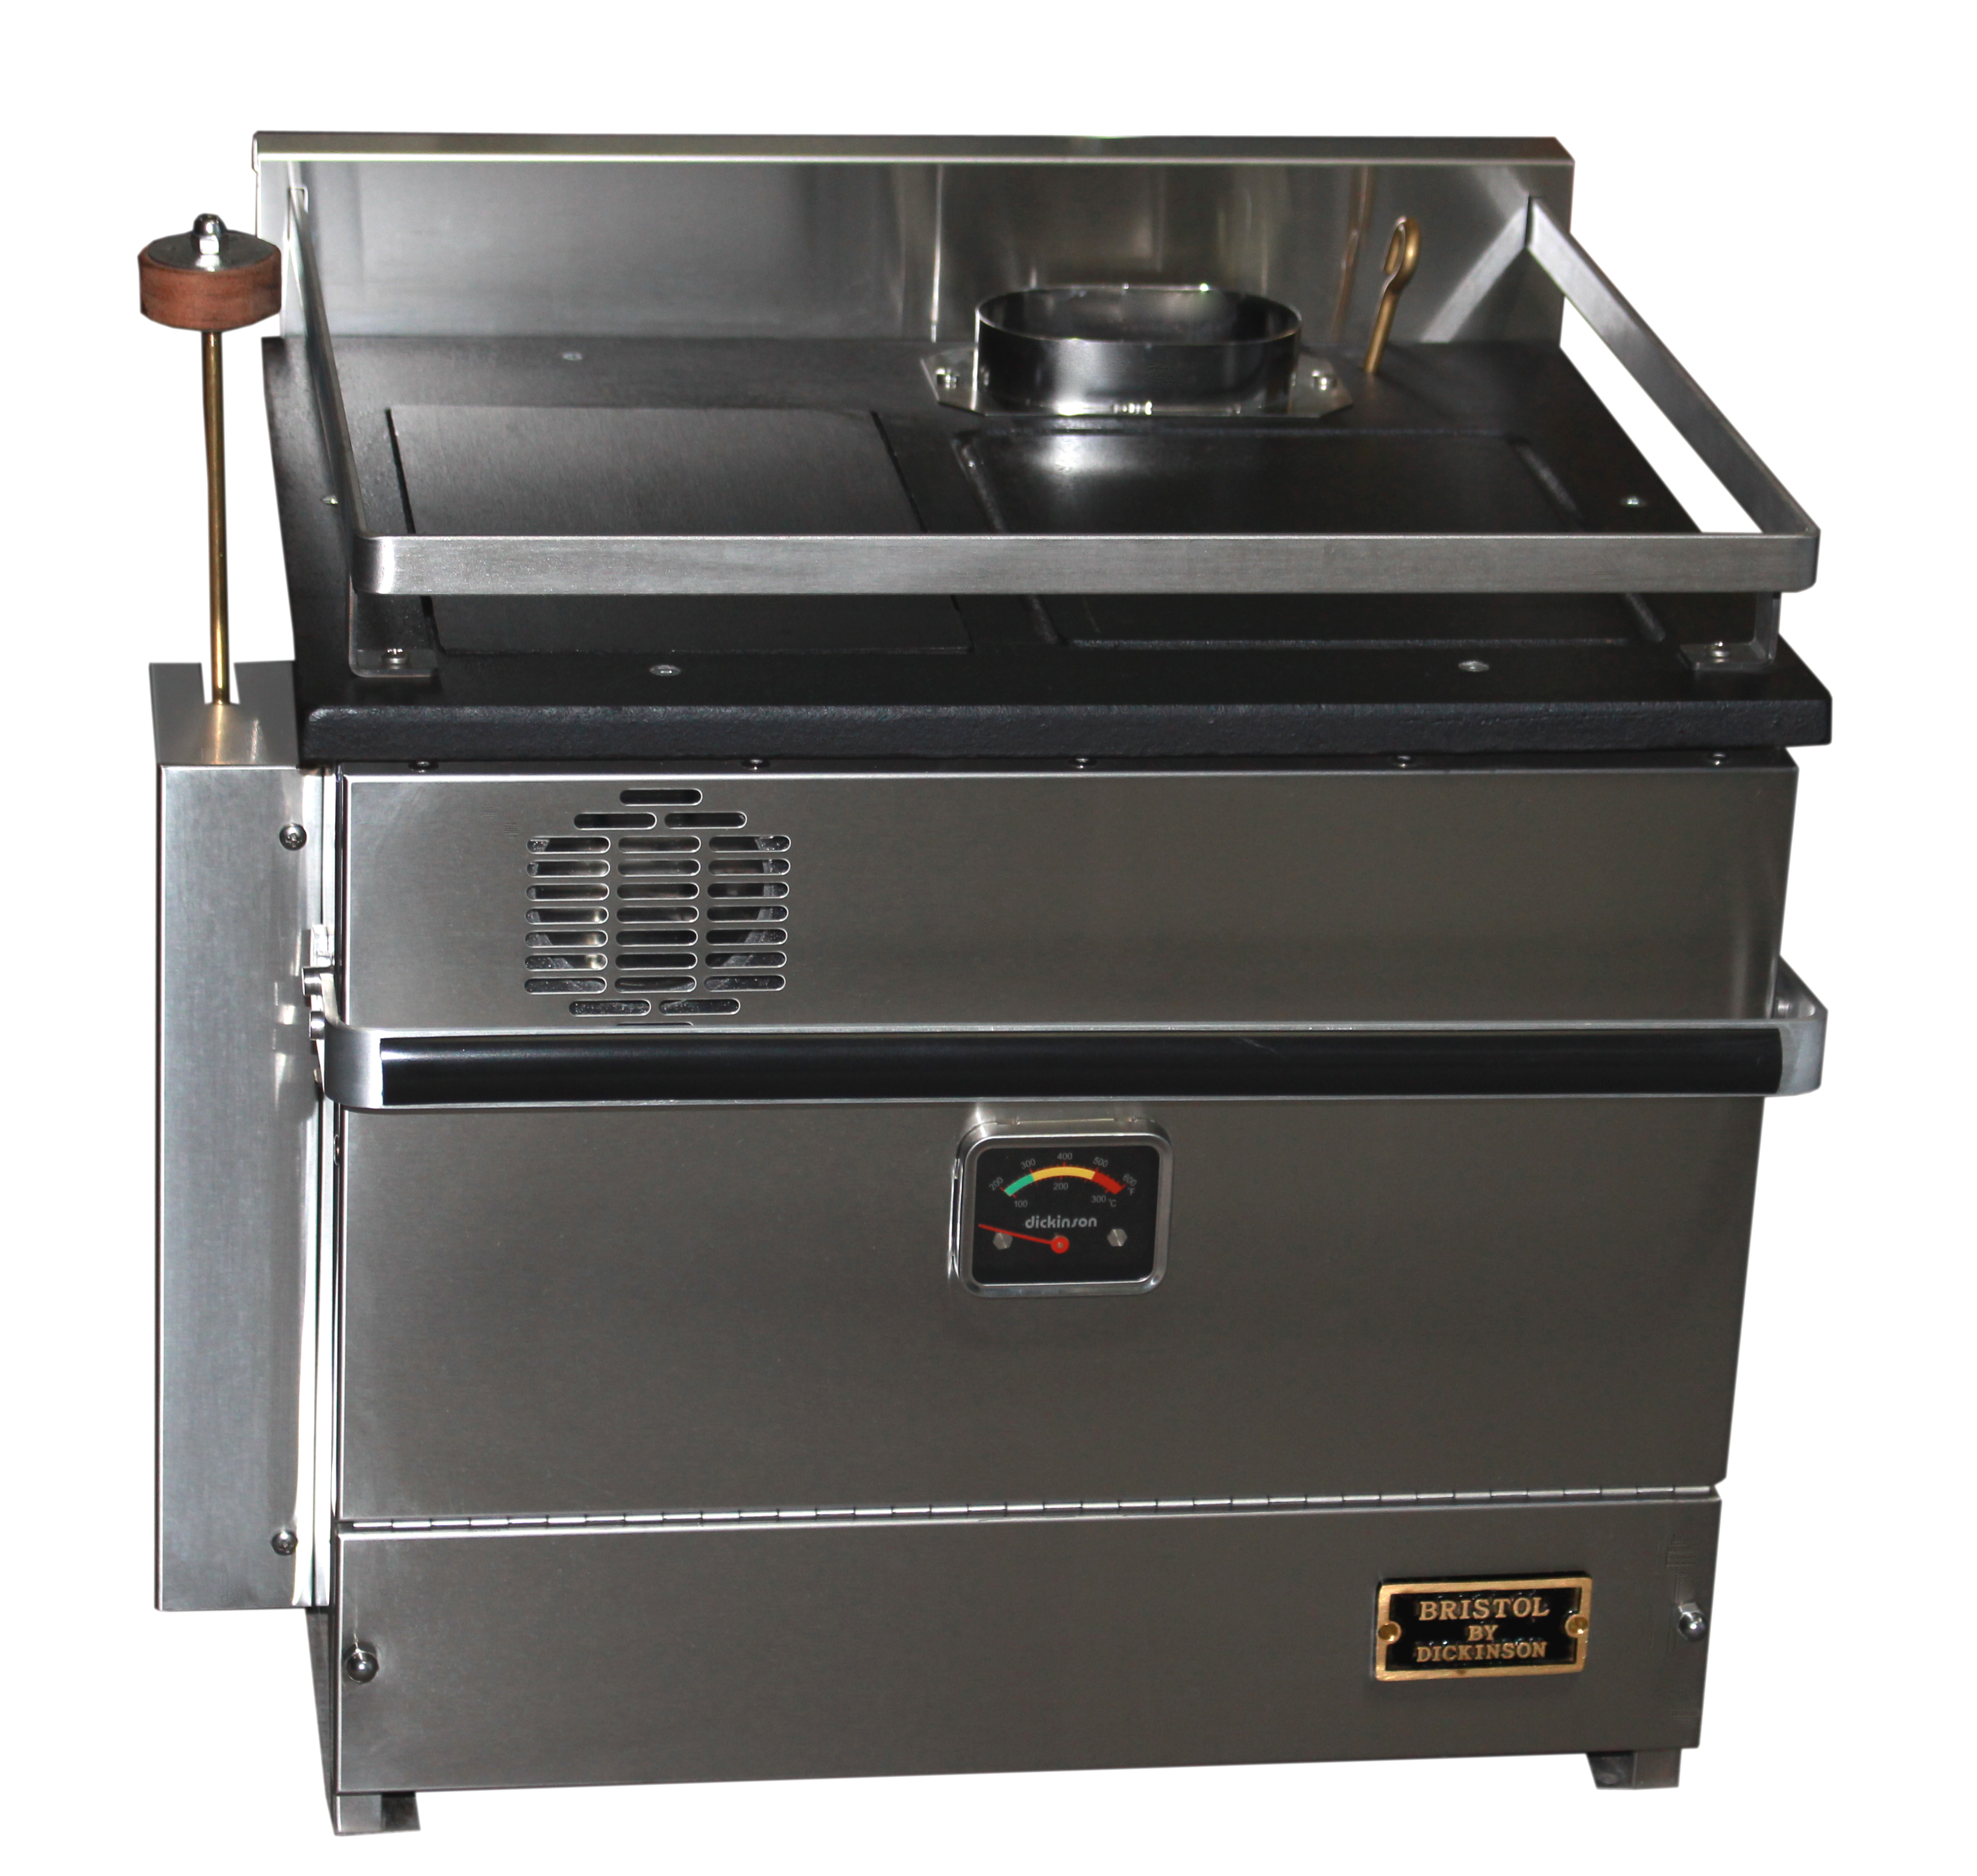 Dickinson Marine Fireplace: Dickinson Stoves, Heaters, And BBQ's